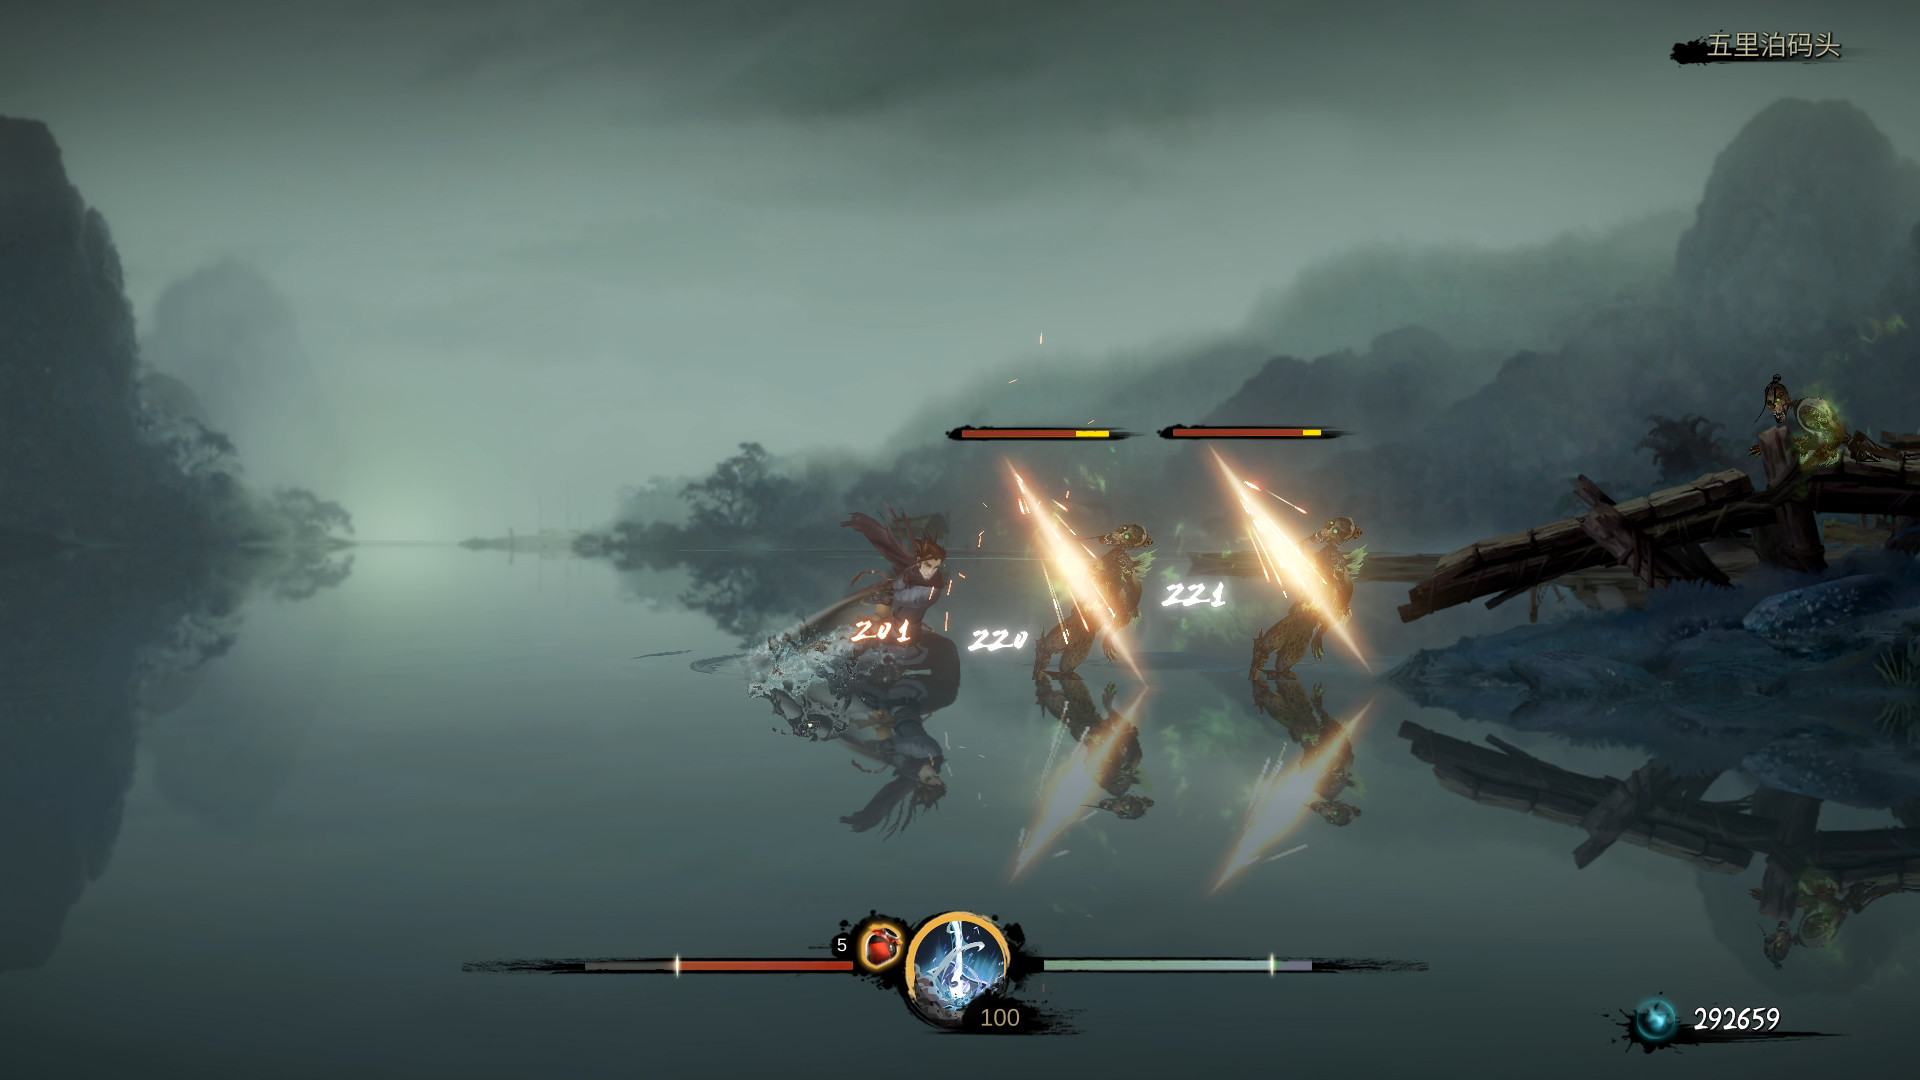 Screenshot From Eastern Exorcist Featuring A Lake